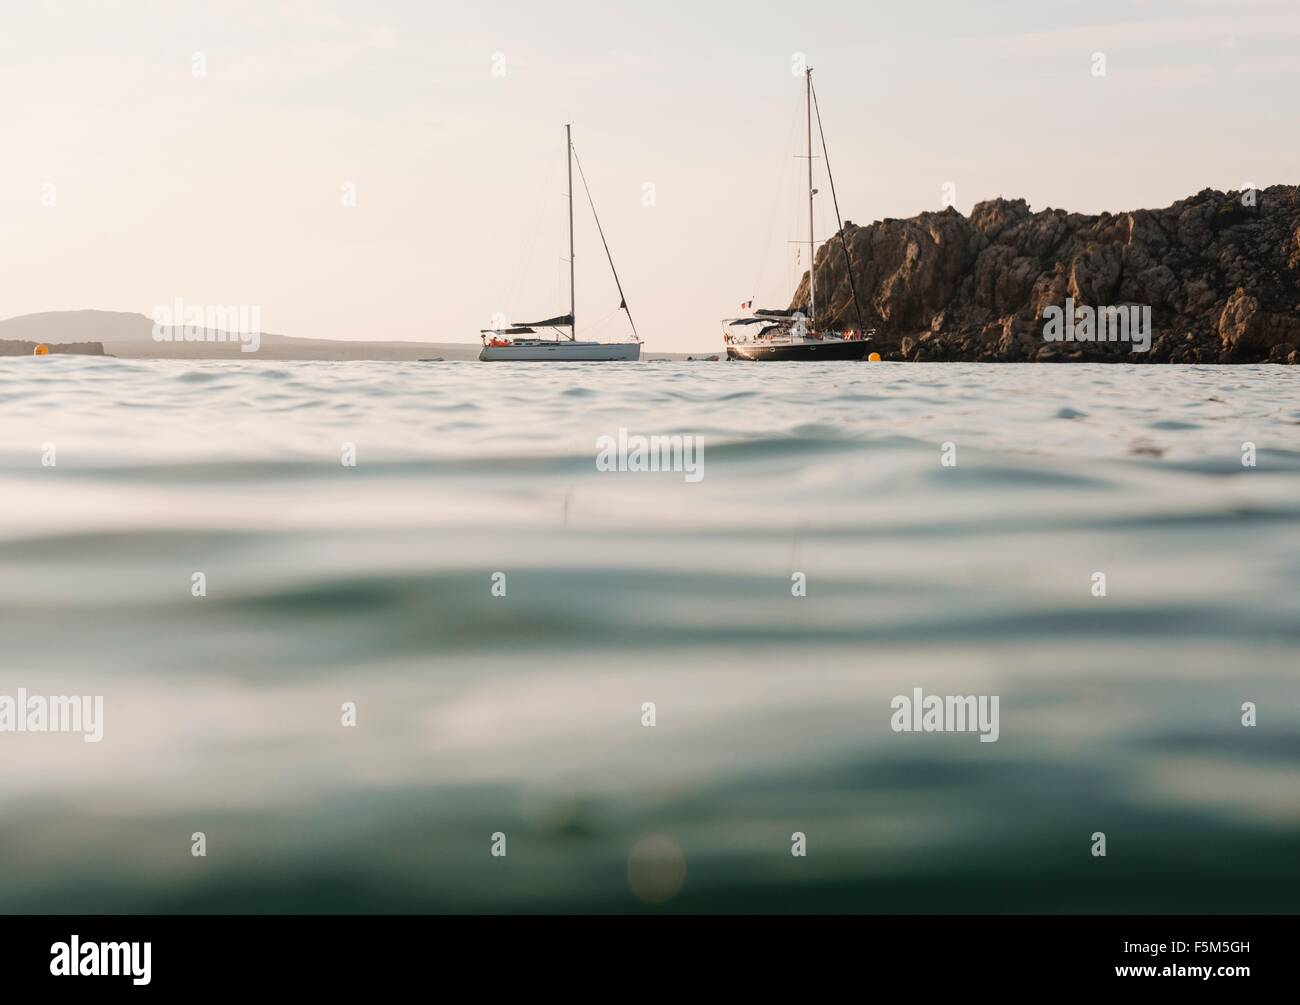 Surface level view of two yachts anchored at sea, Menorca, Balearic islands, Spain - Stock Image